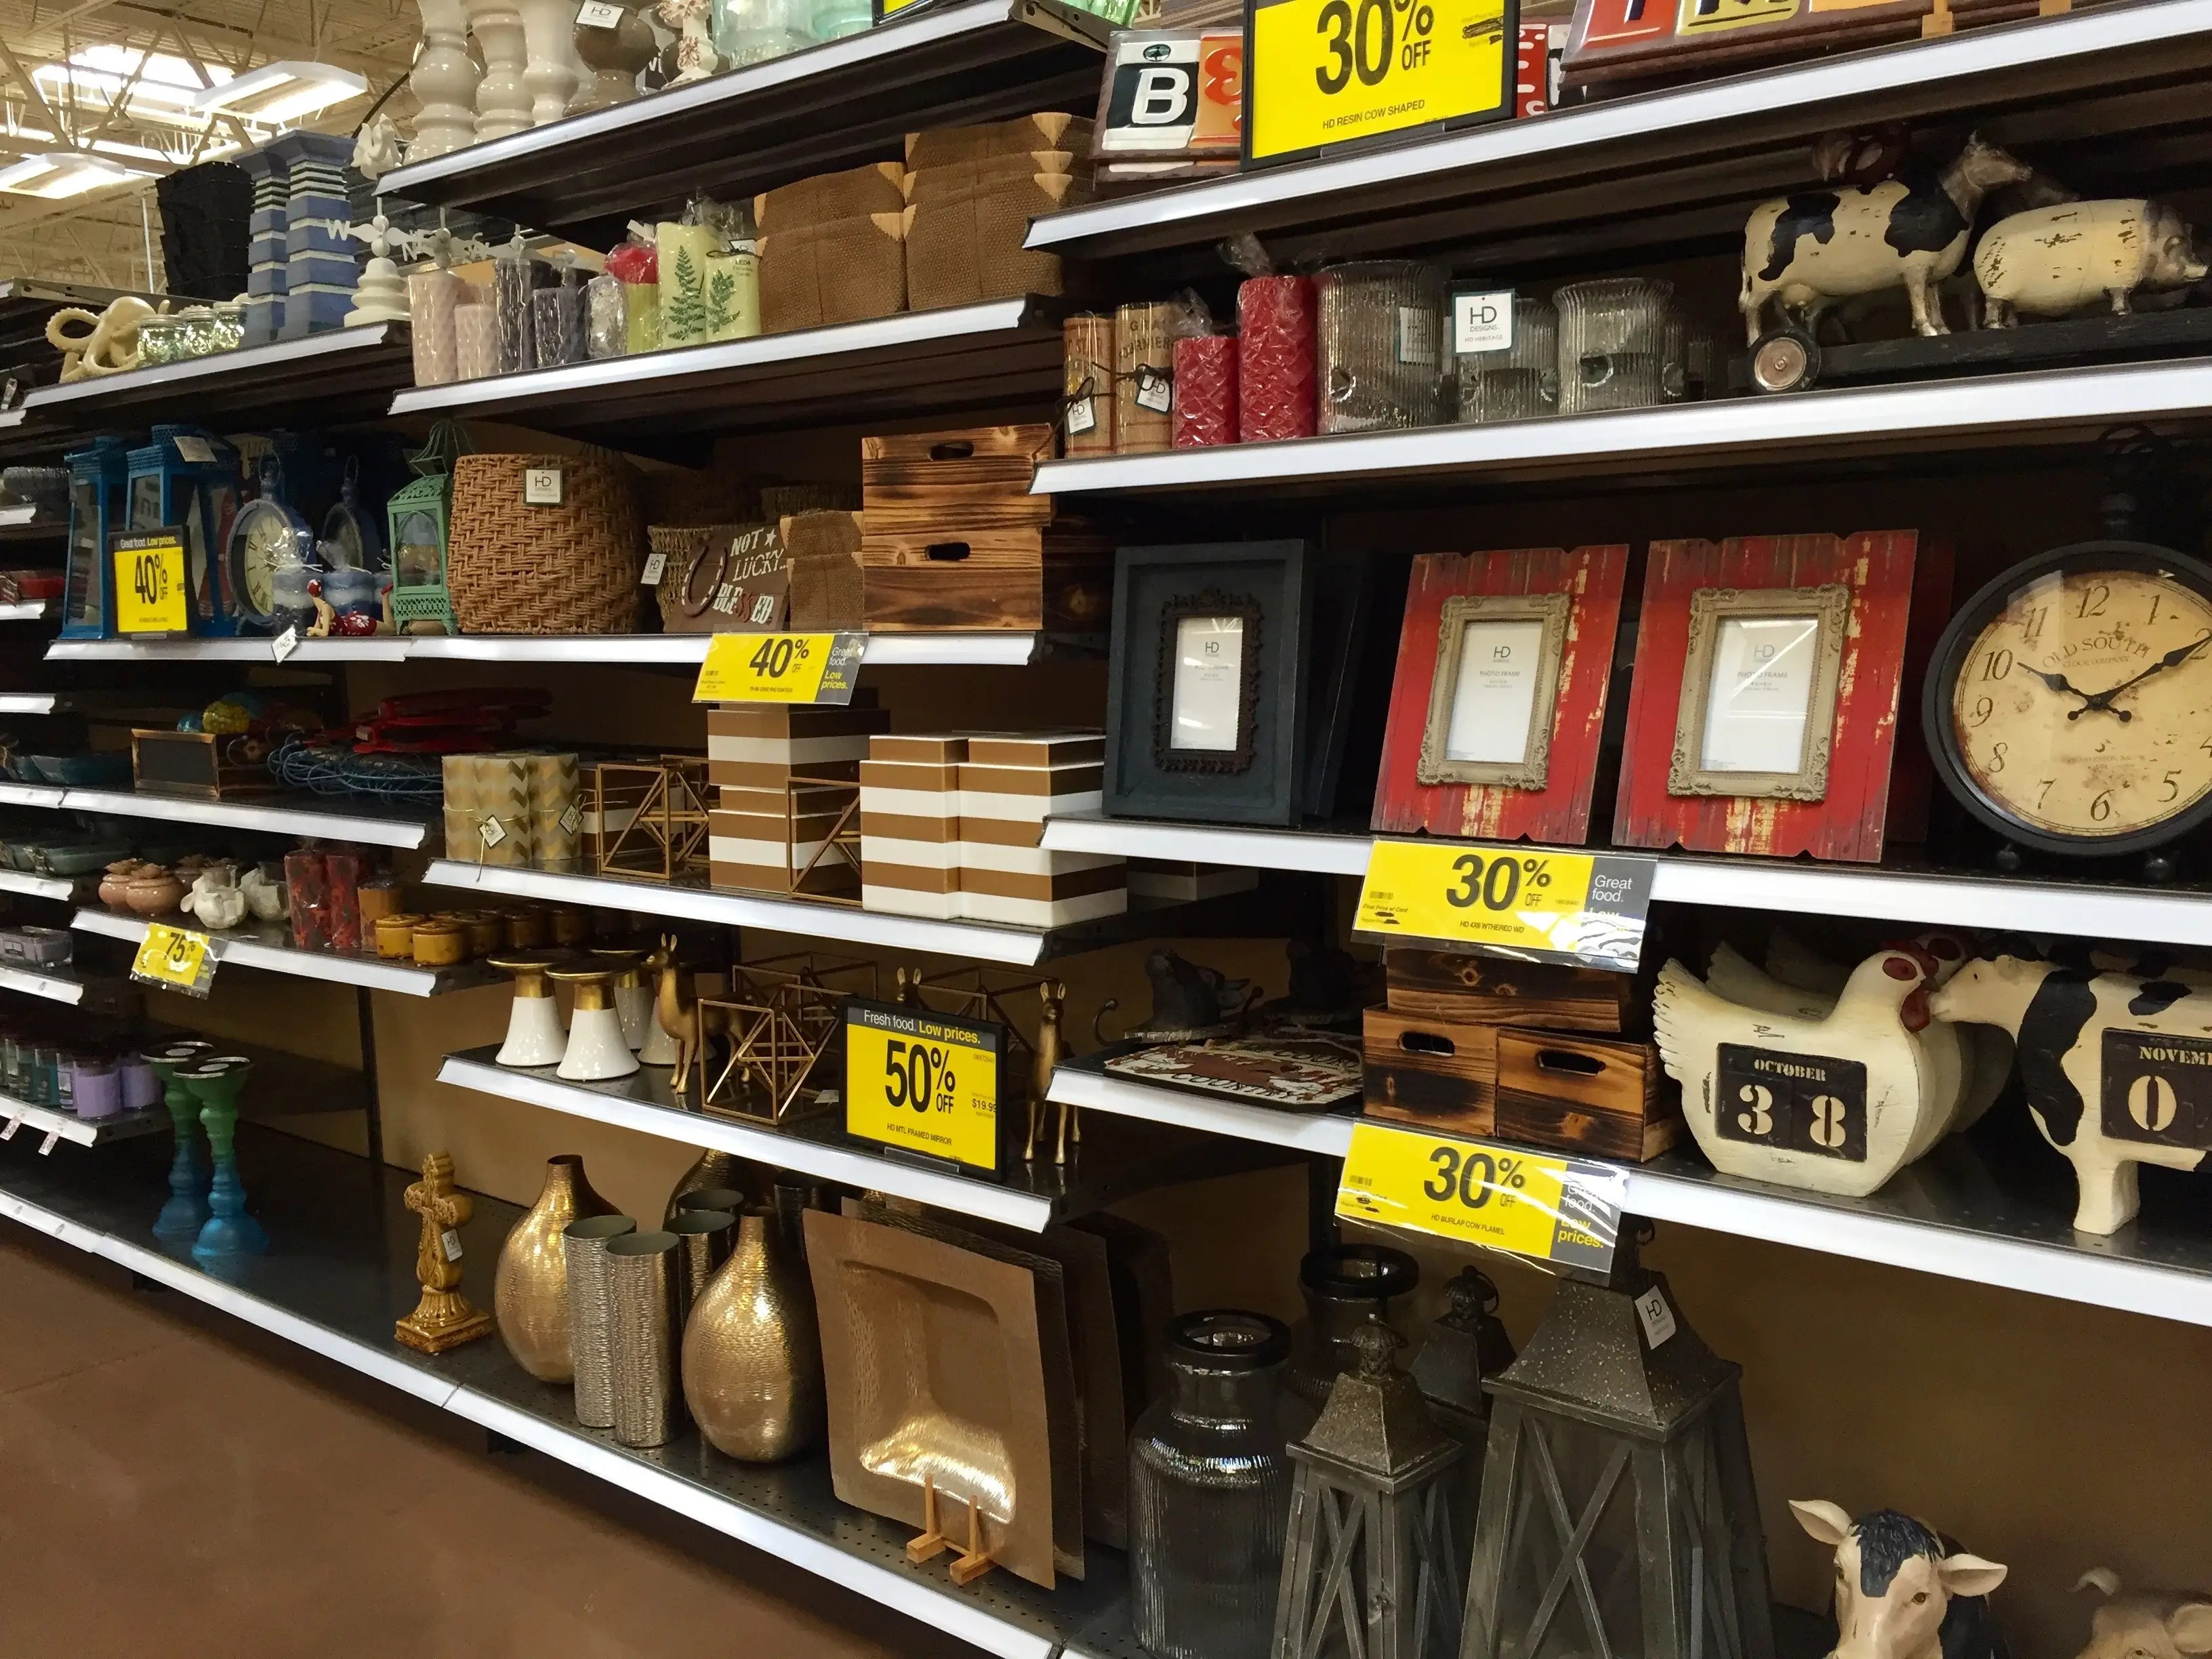 There are lots of decorative items like picture frames and vases ...